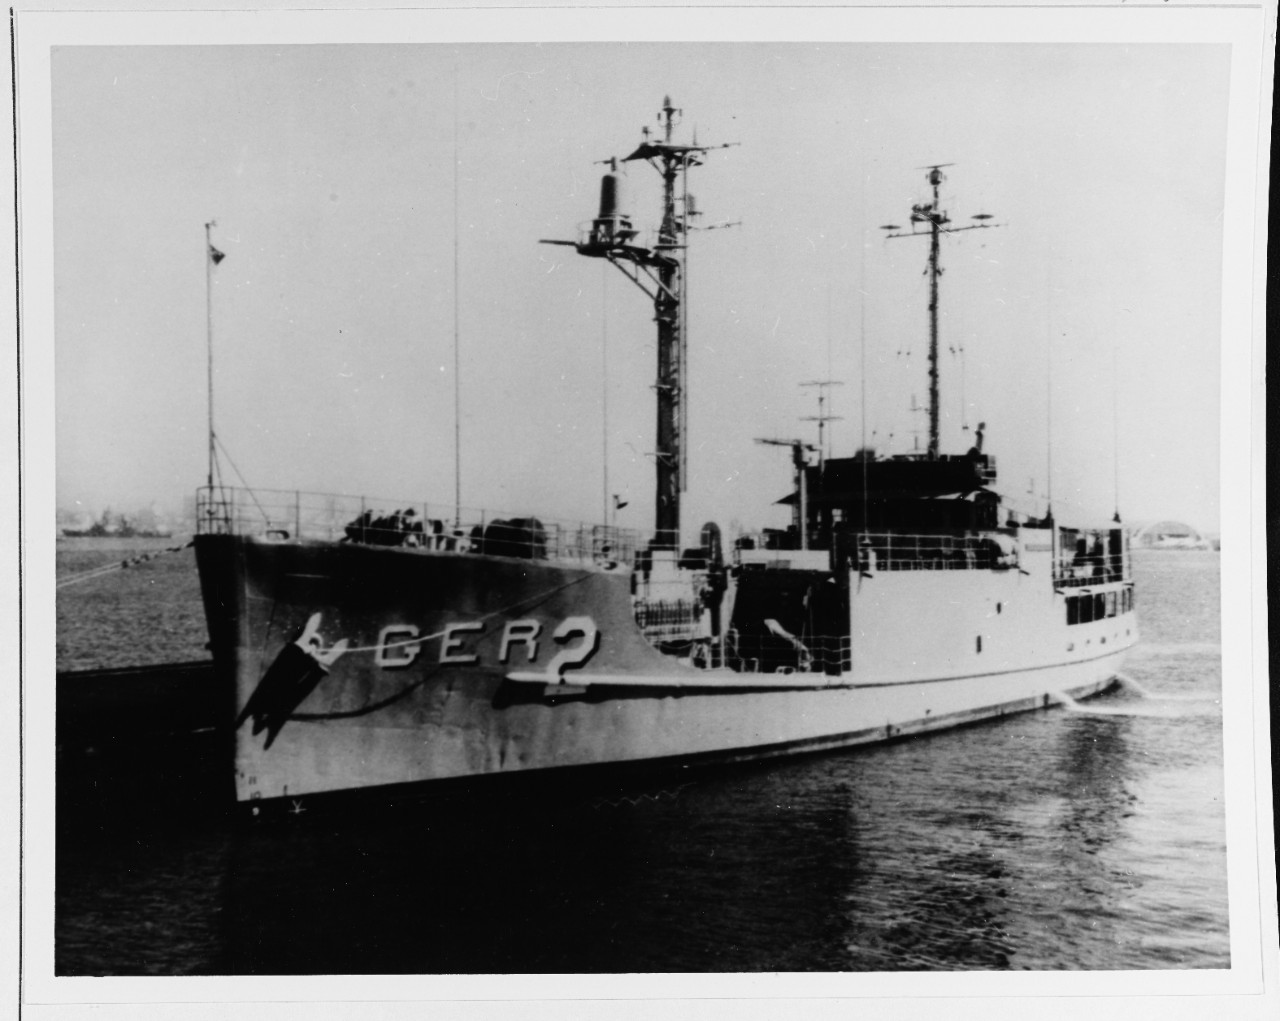 In port, circa 1967. This photograph was received by the Naval Photographic Center in January 1968. Official U.S. Navy Photograph.